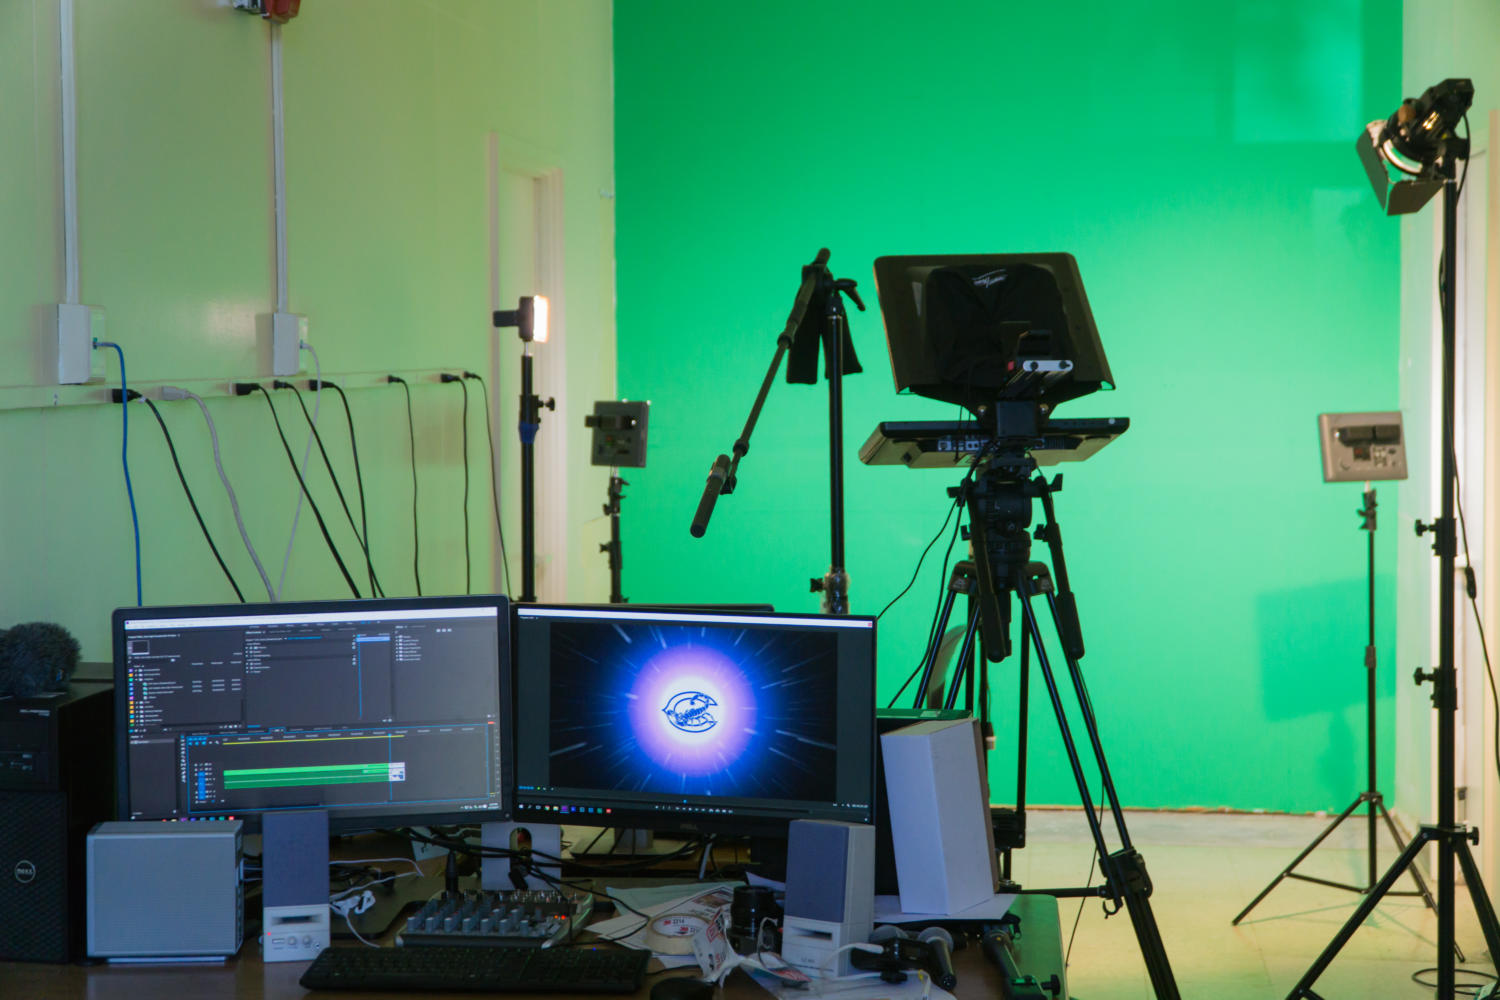 The video production class got a new room to use as a studio this year so they could conduct live streams.